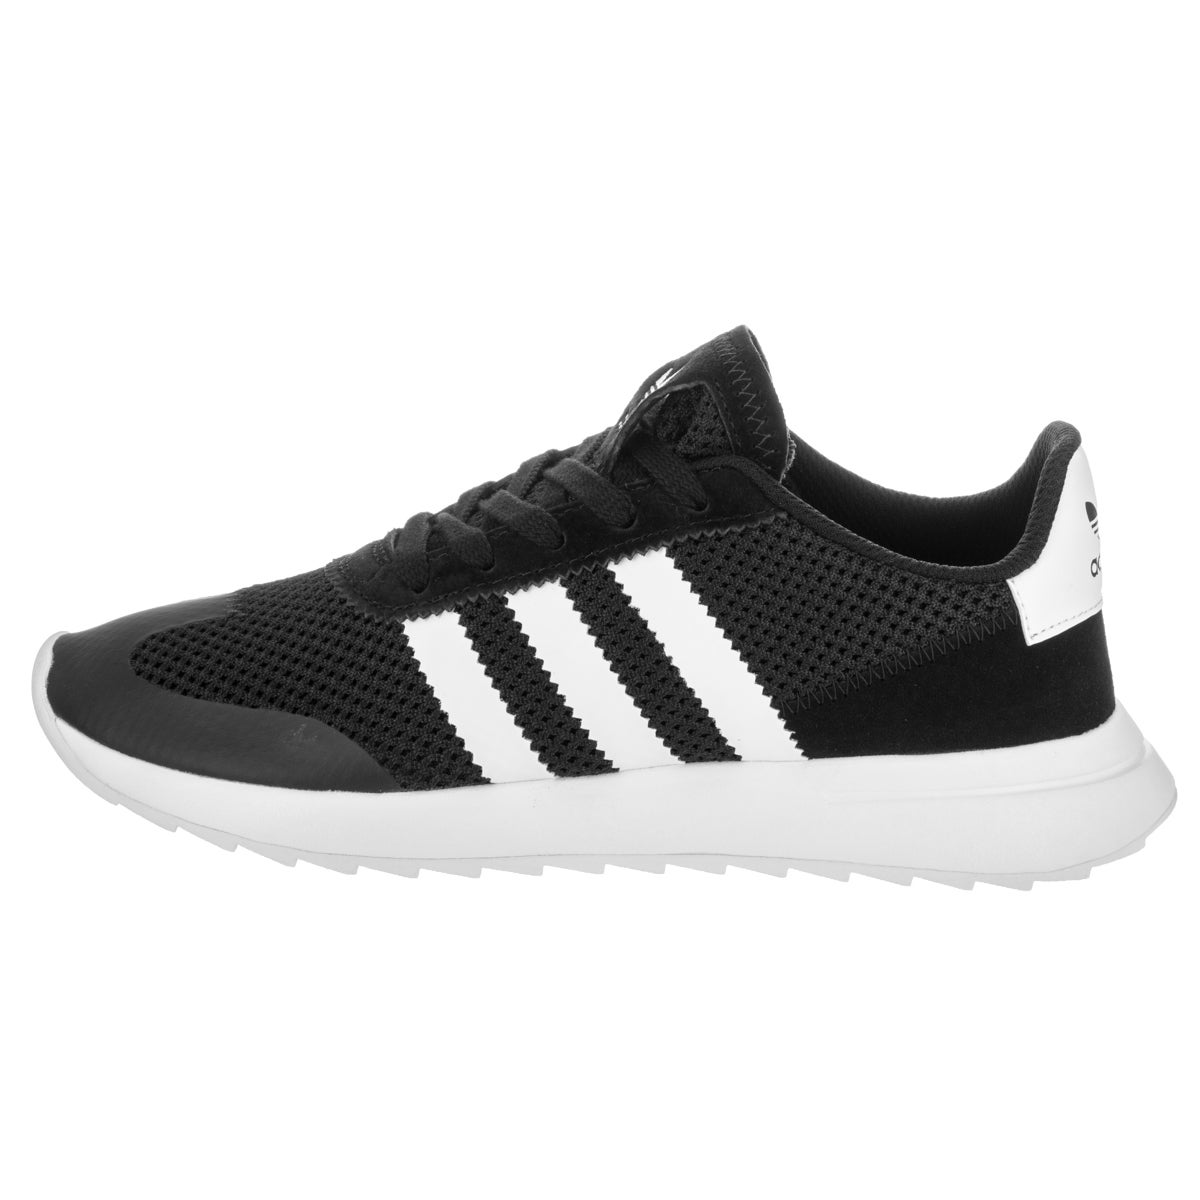 brand new f8a29 ebbe6 Shop Adidas Womens Flashback Originals Running Shoe - Free Shipping Today  - Overstock - 13959220